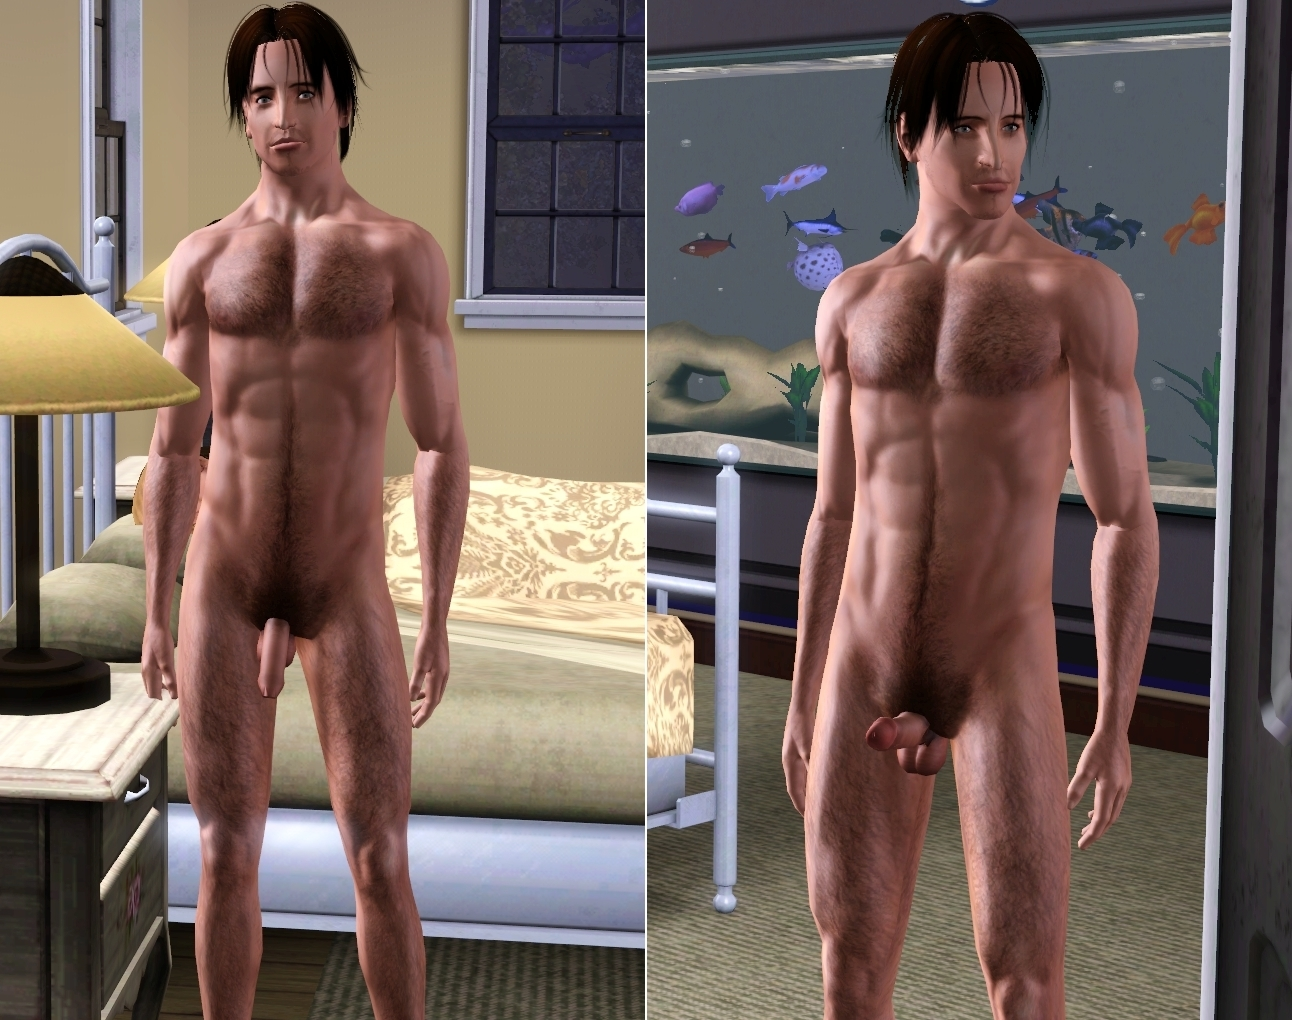 Die sims 3 nude patch sex females